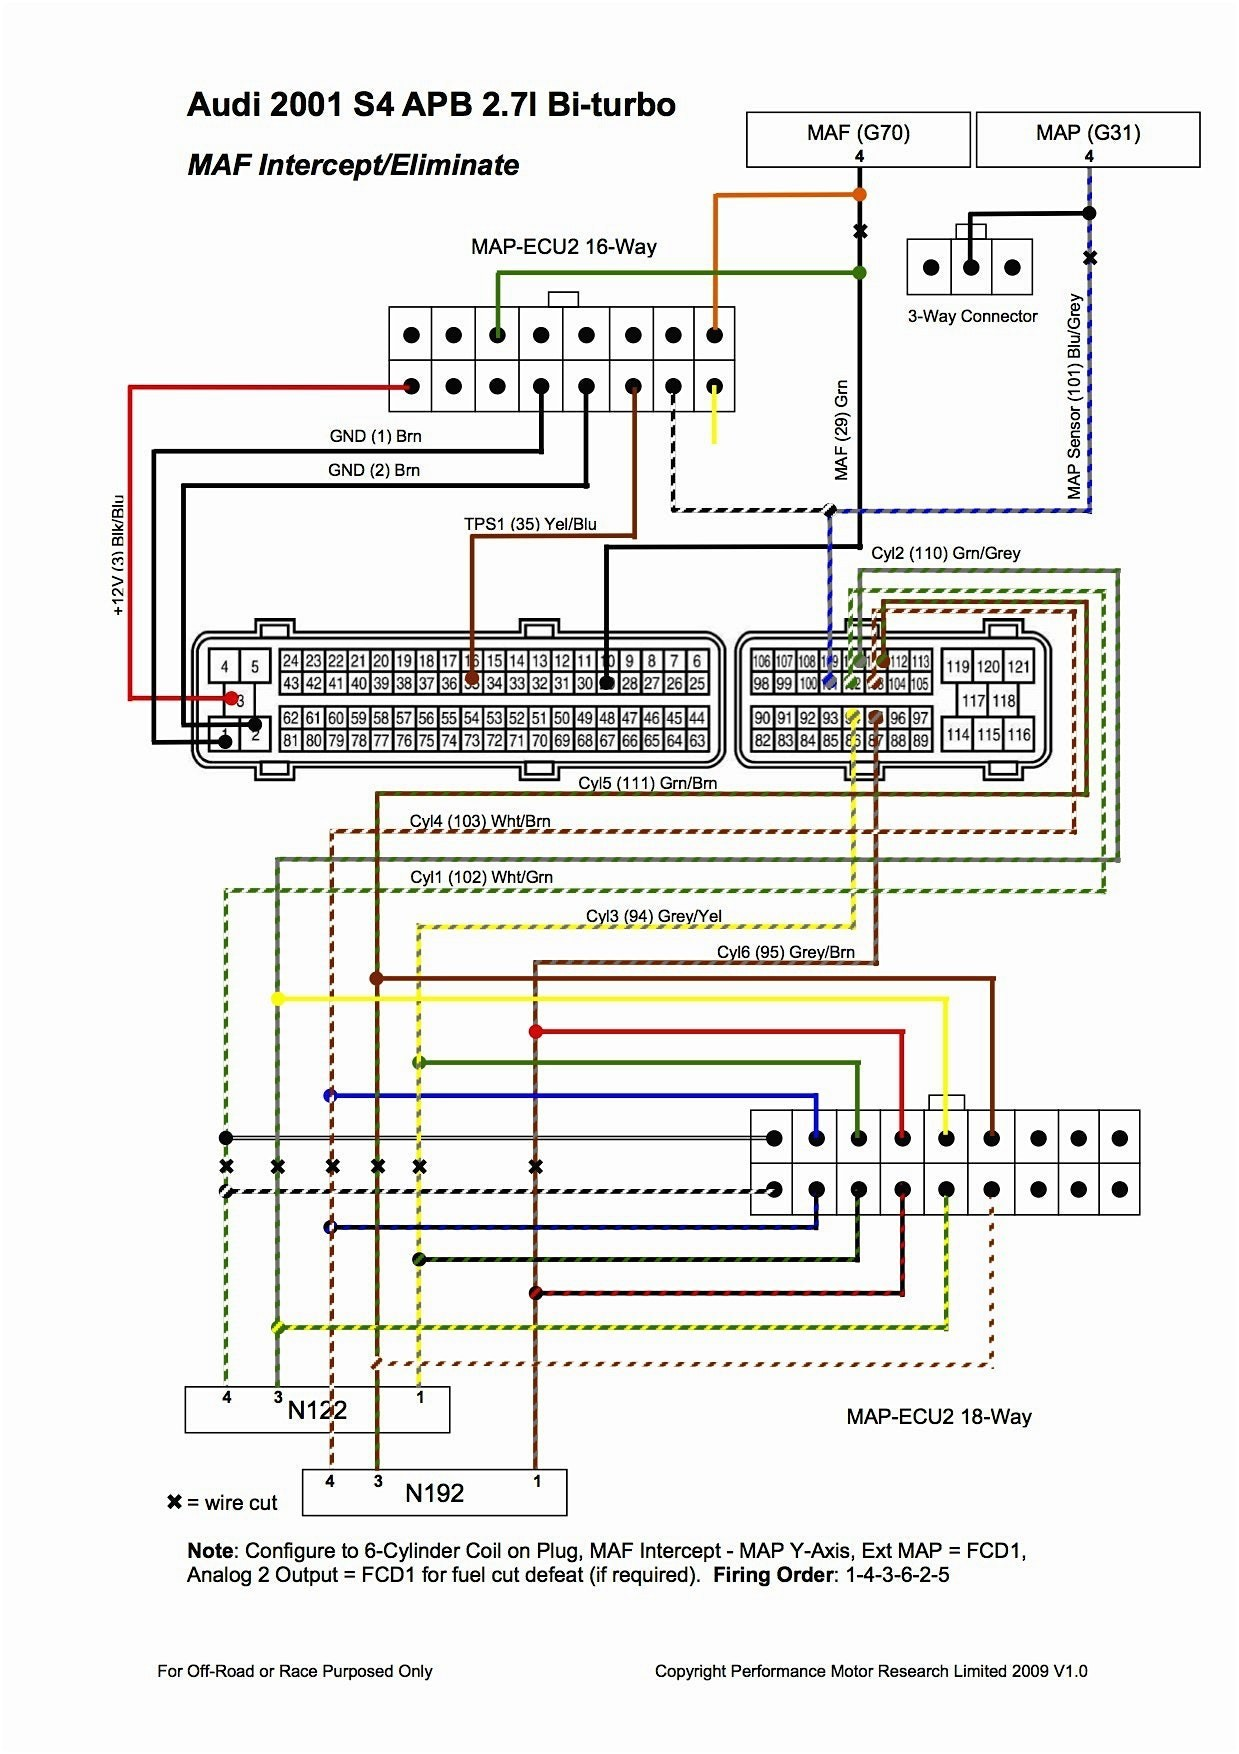 Fuse Diagram 2000 Sienna Worksheet And Wiring Diagrams For Toyota 2007 Tundra Rh Detoxicrecenze Com 2001